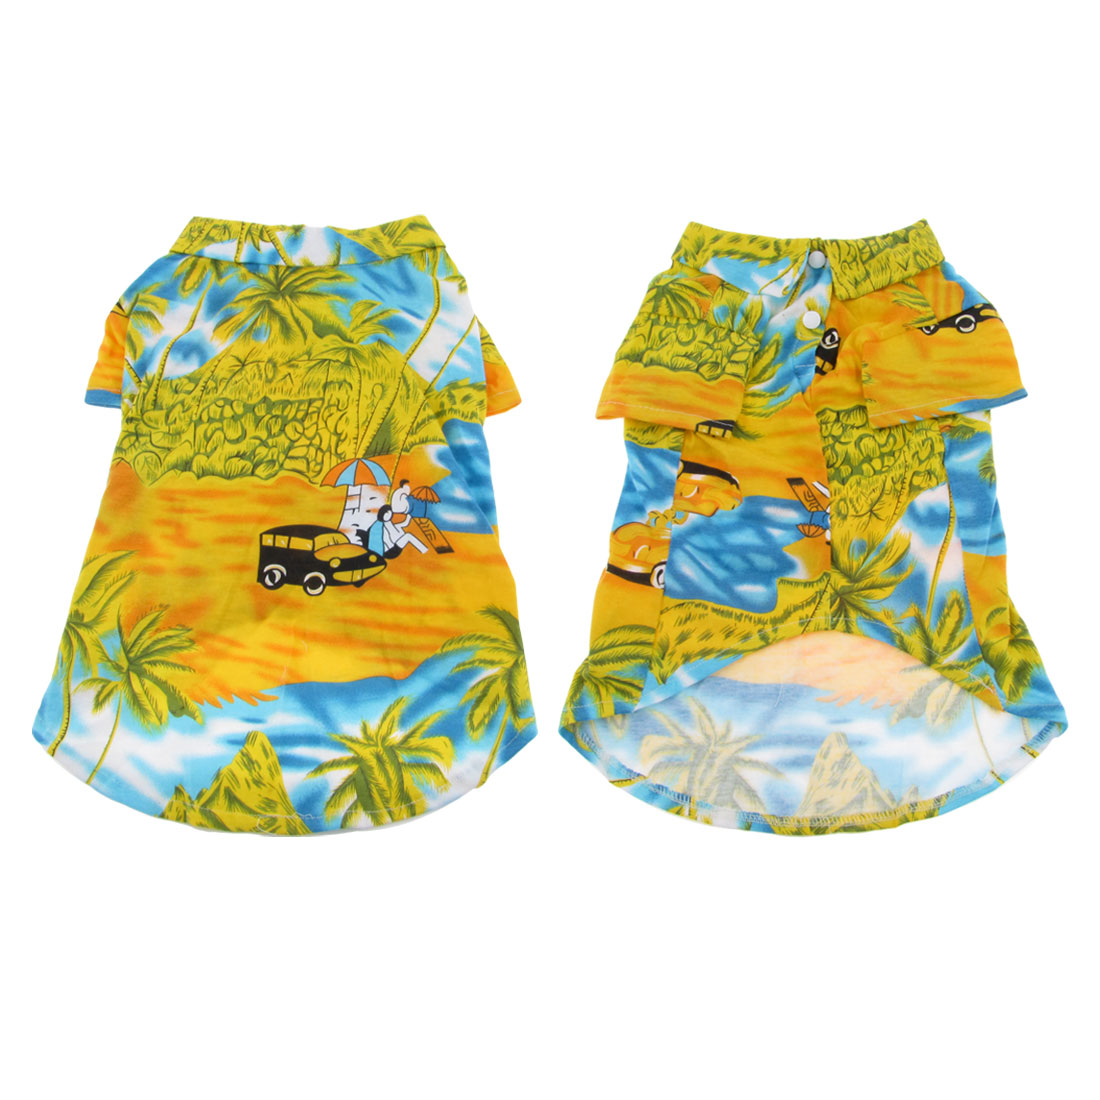 Pet Dog Yorkie Shirt Yellow Blue Beach Style Print Summer Clothes Apparel XL